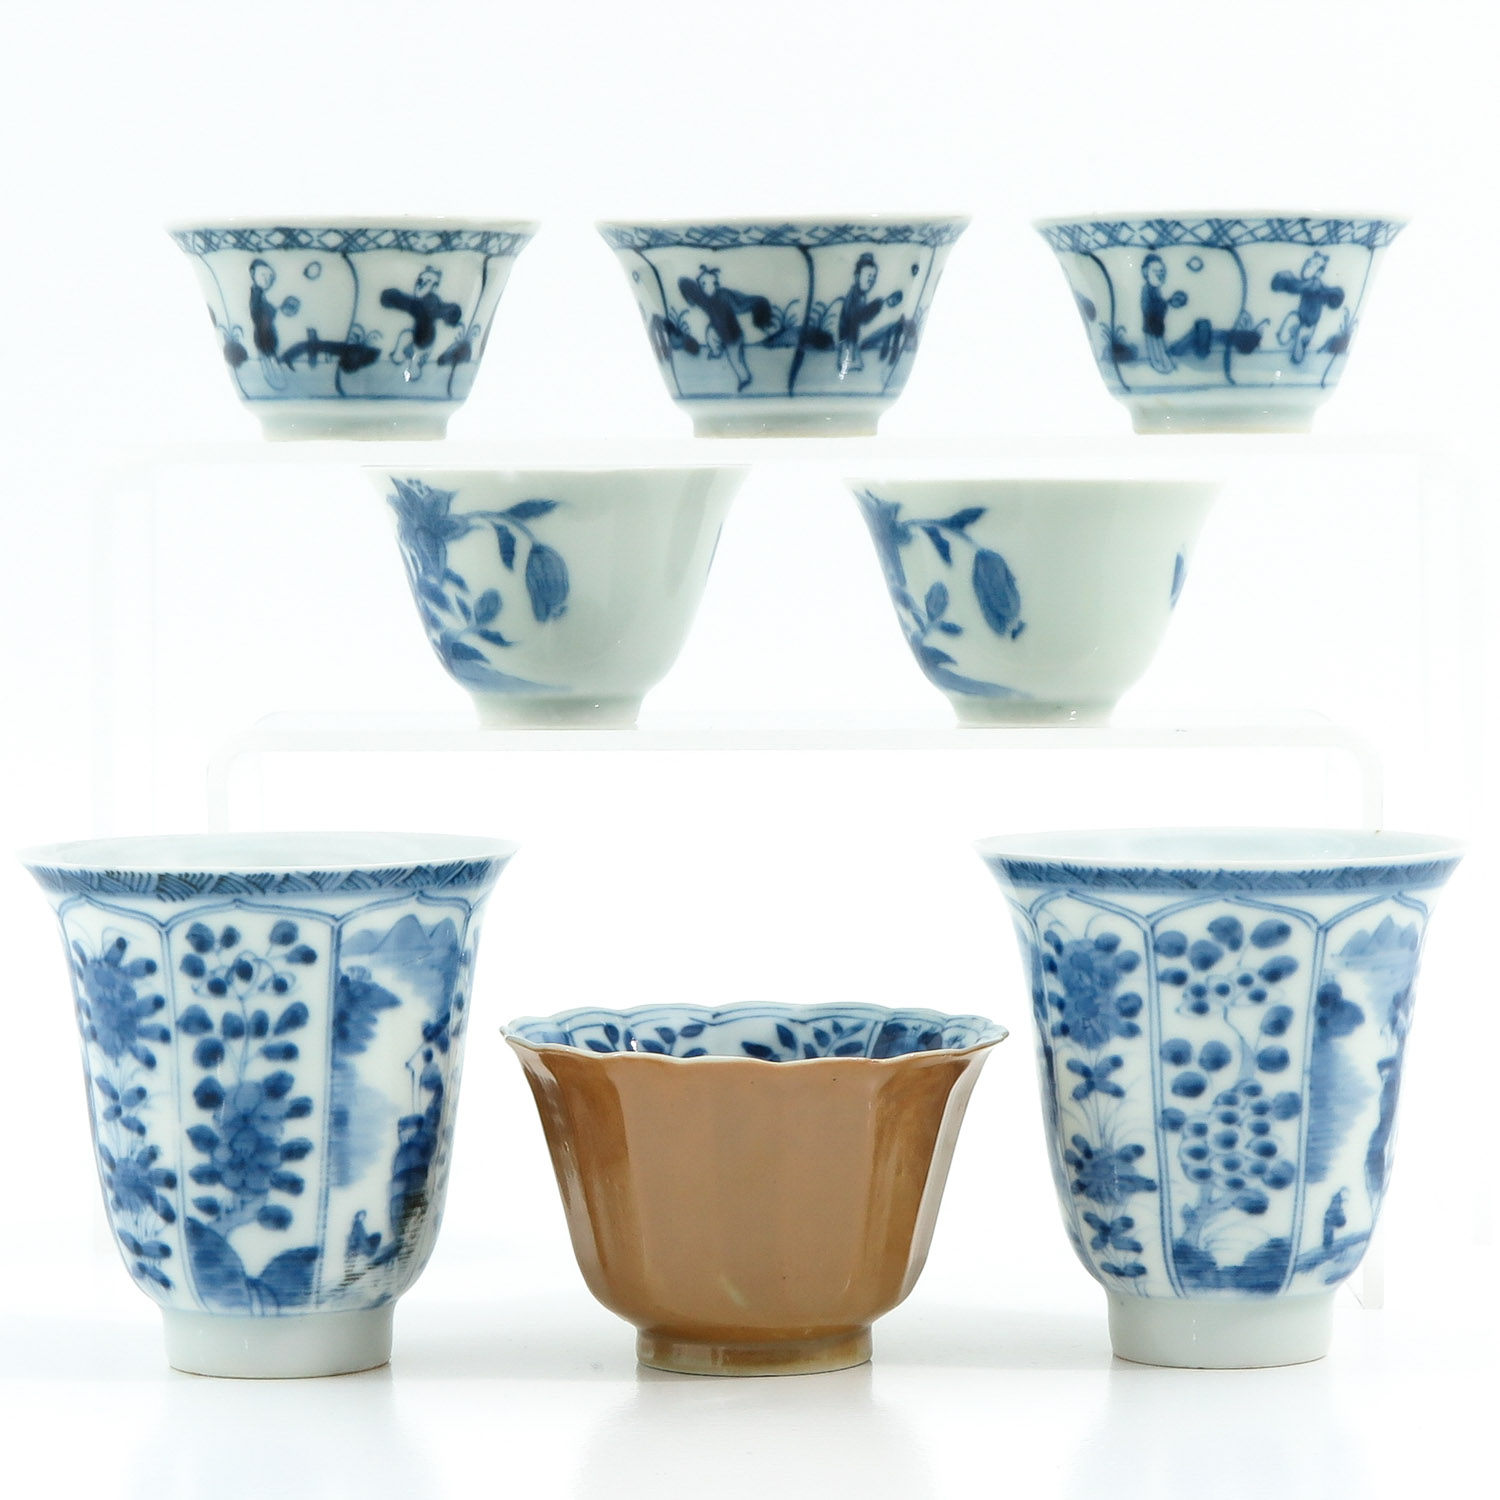 A Diverse Collection of Cups and Saucers - Image 2 of 10